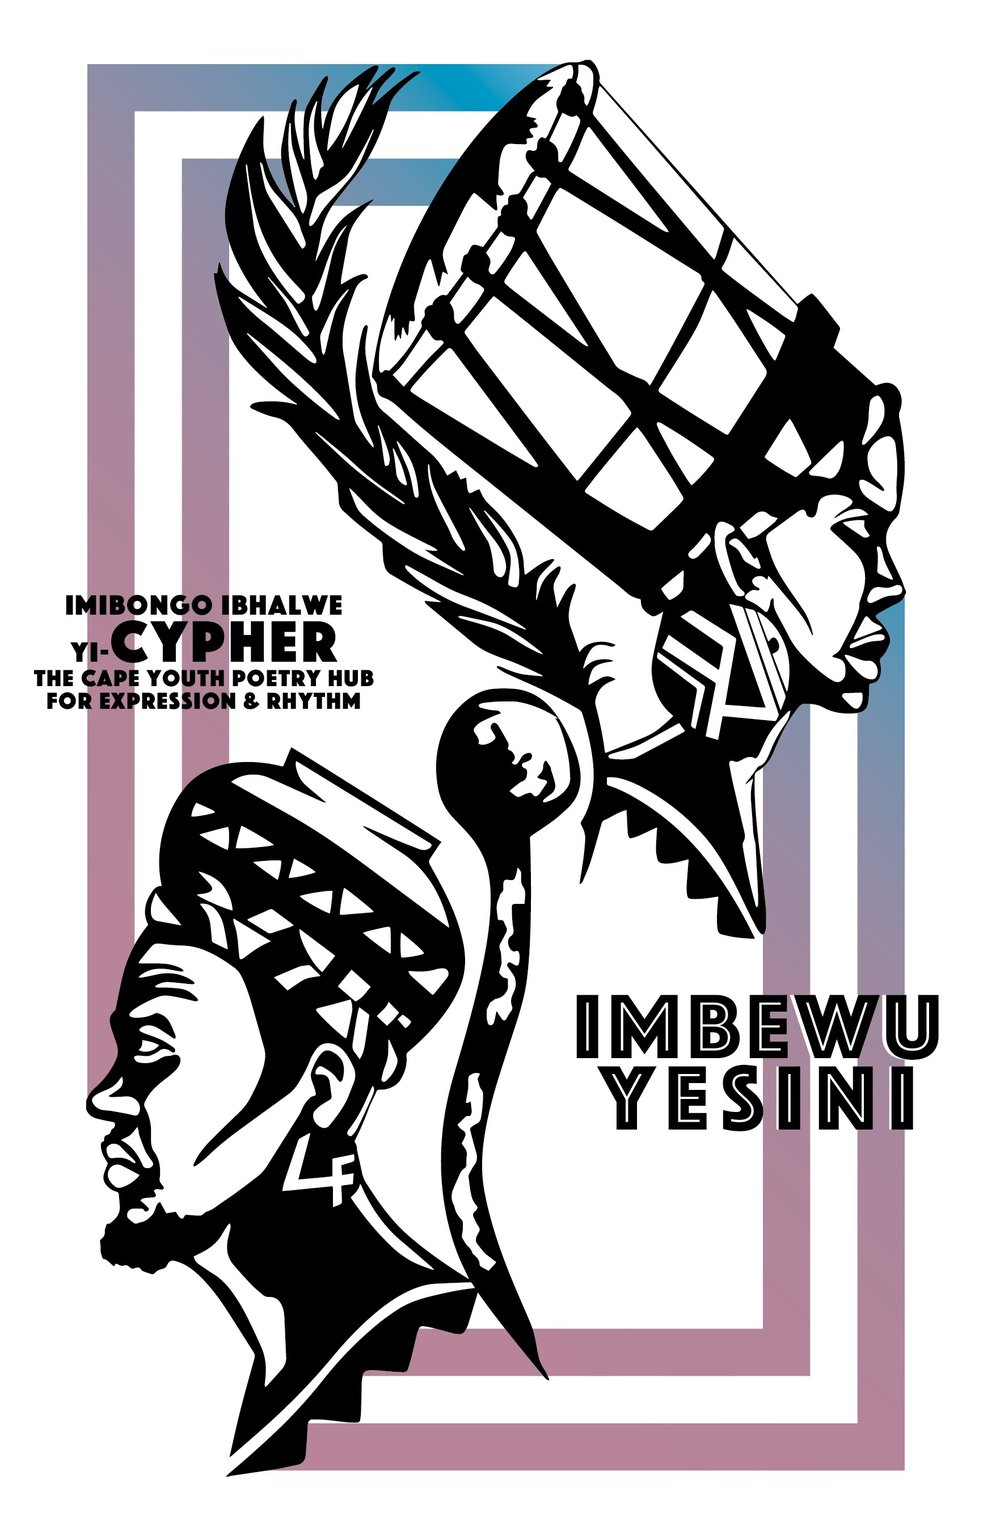 Announcing: Imbewu Yesini, An Anthology Of Young Cape Poets!